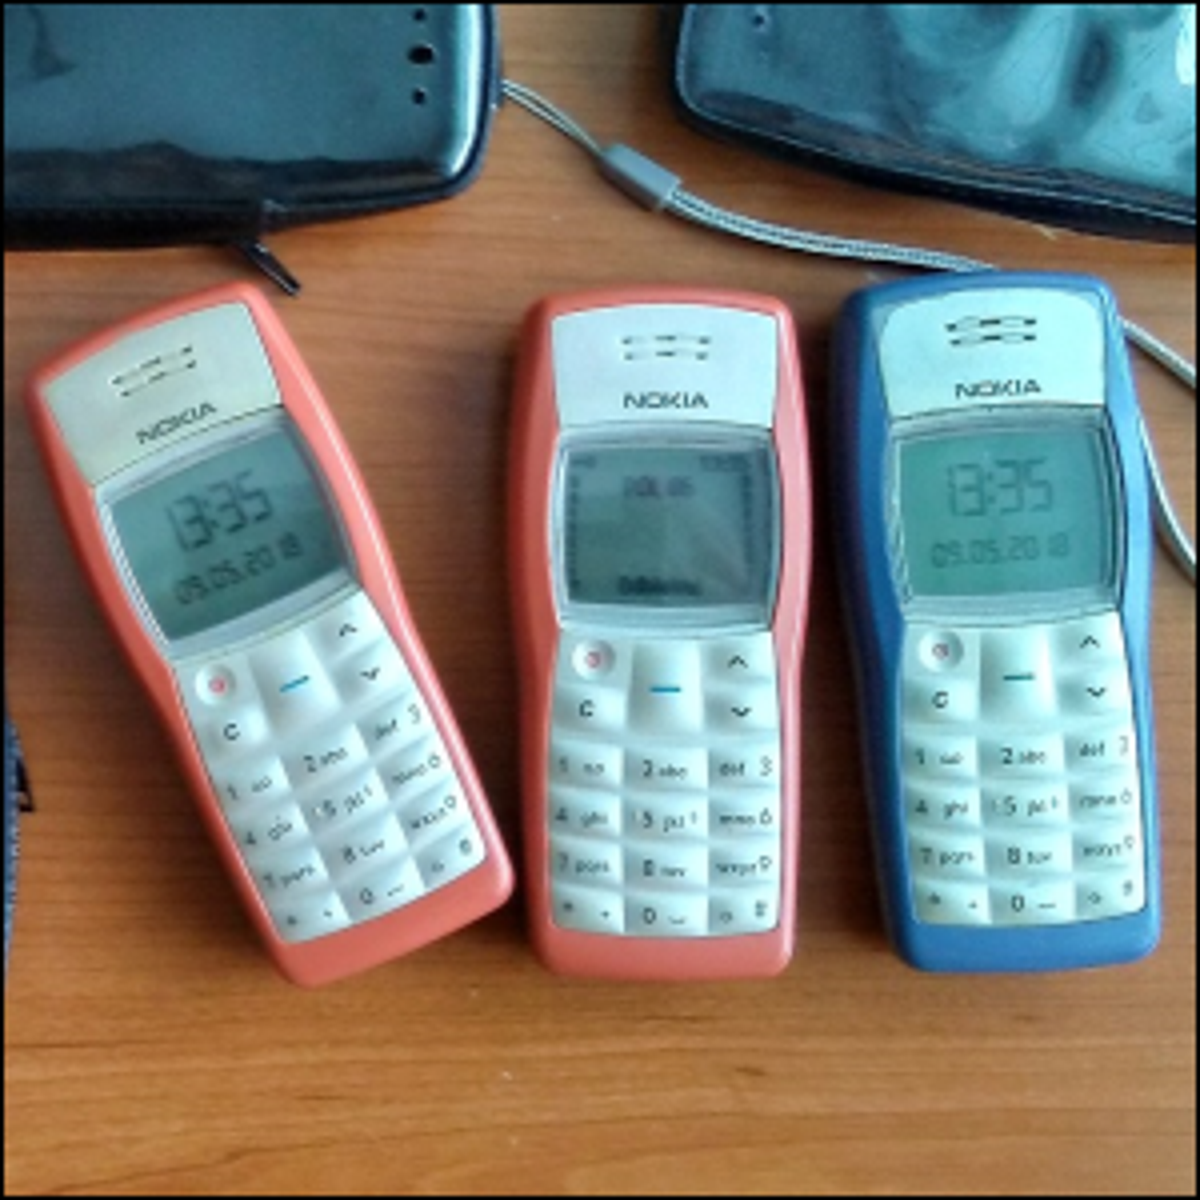 Three Nokia 1100 phones laying on a table.